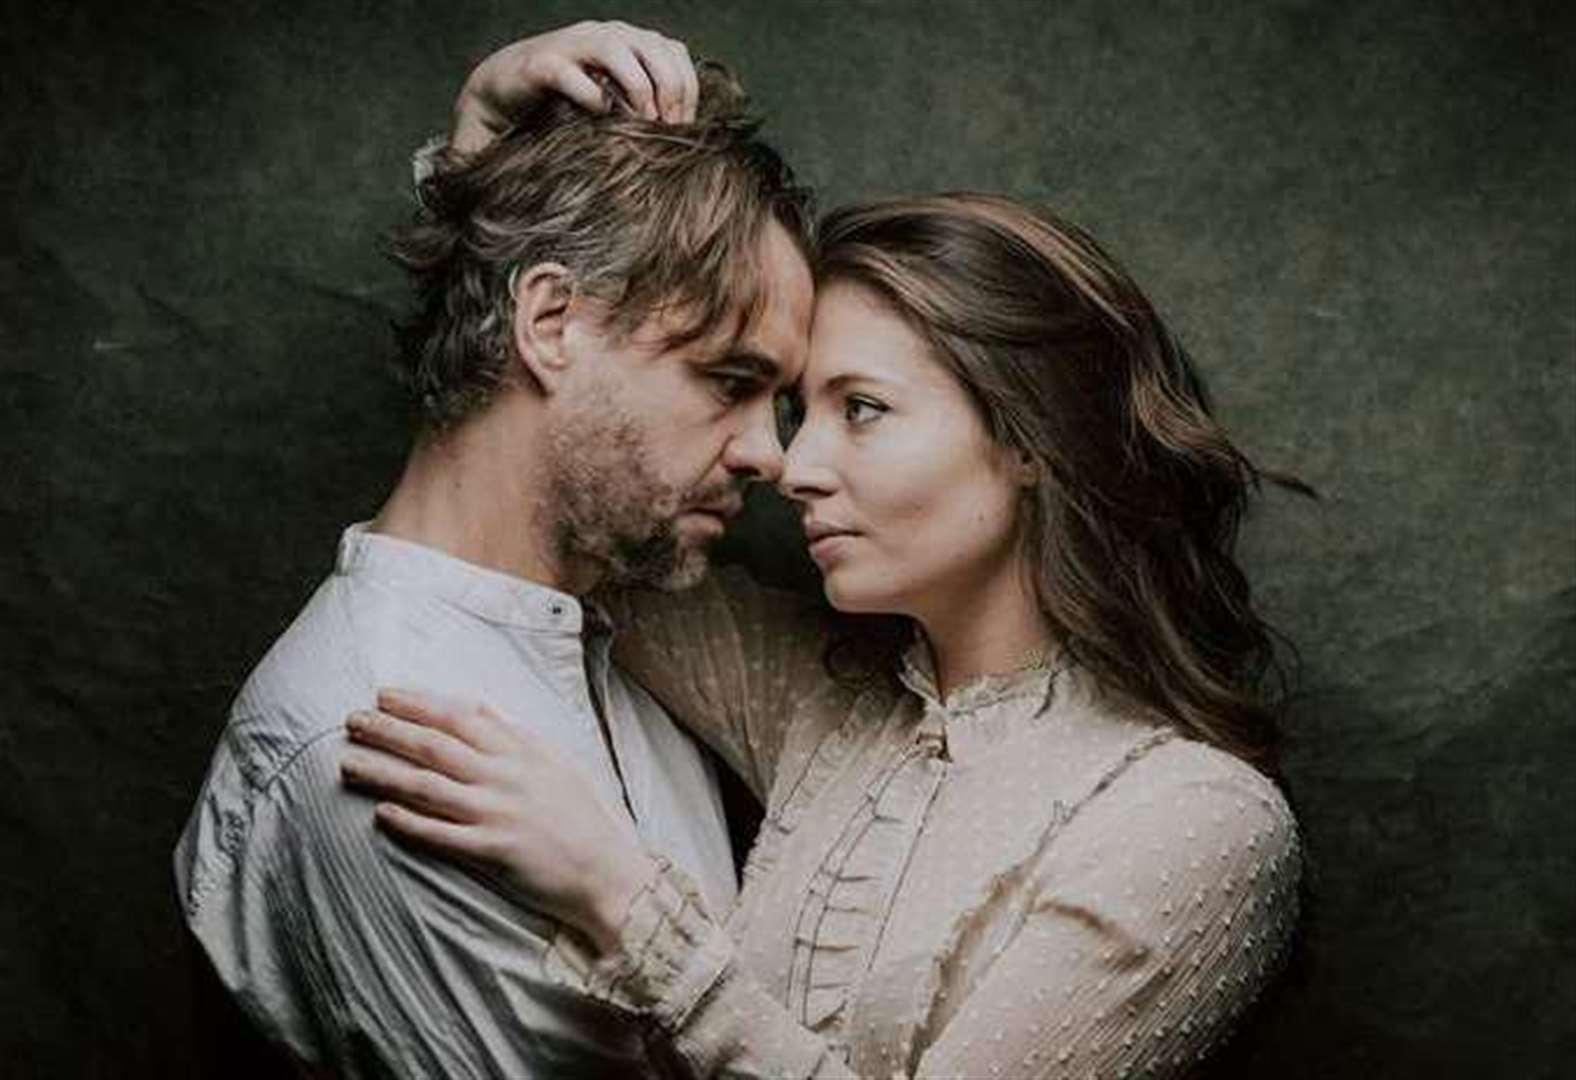 Review: Lady Chatterley's Lover is just as controversial as you remember